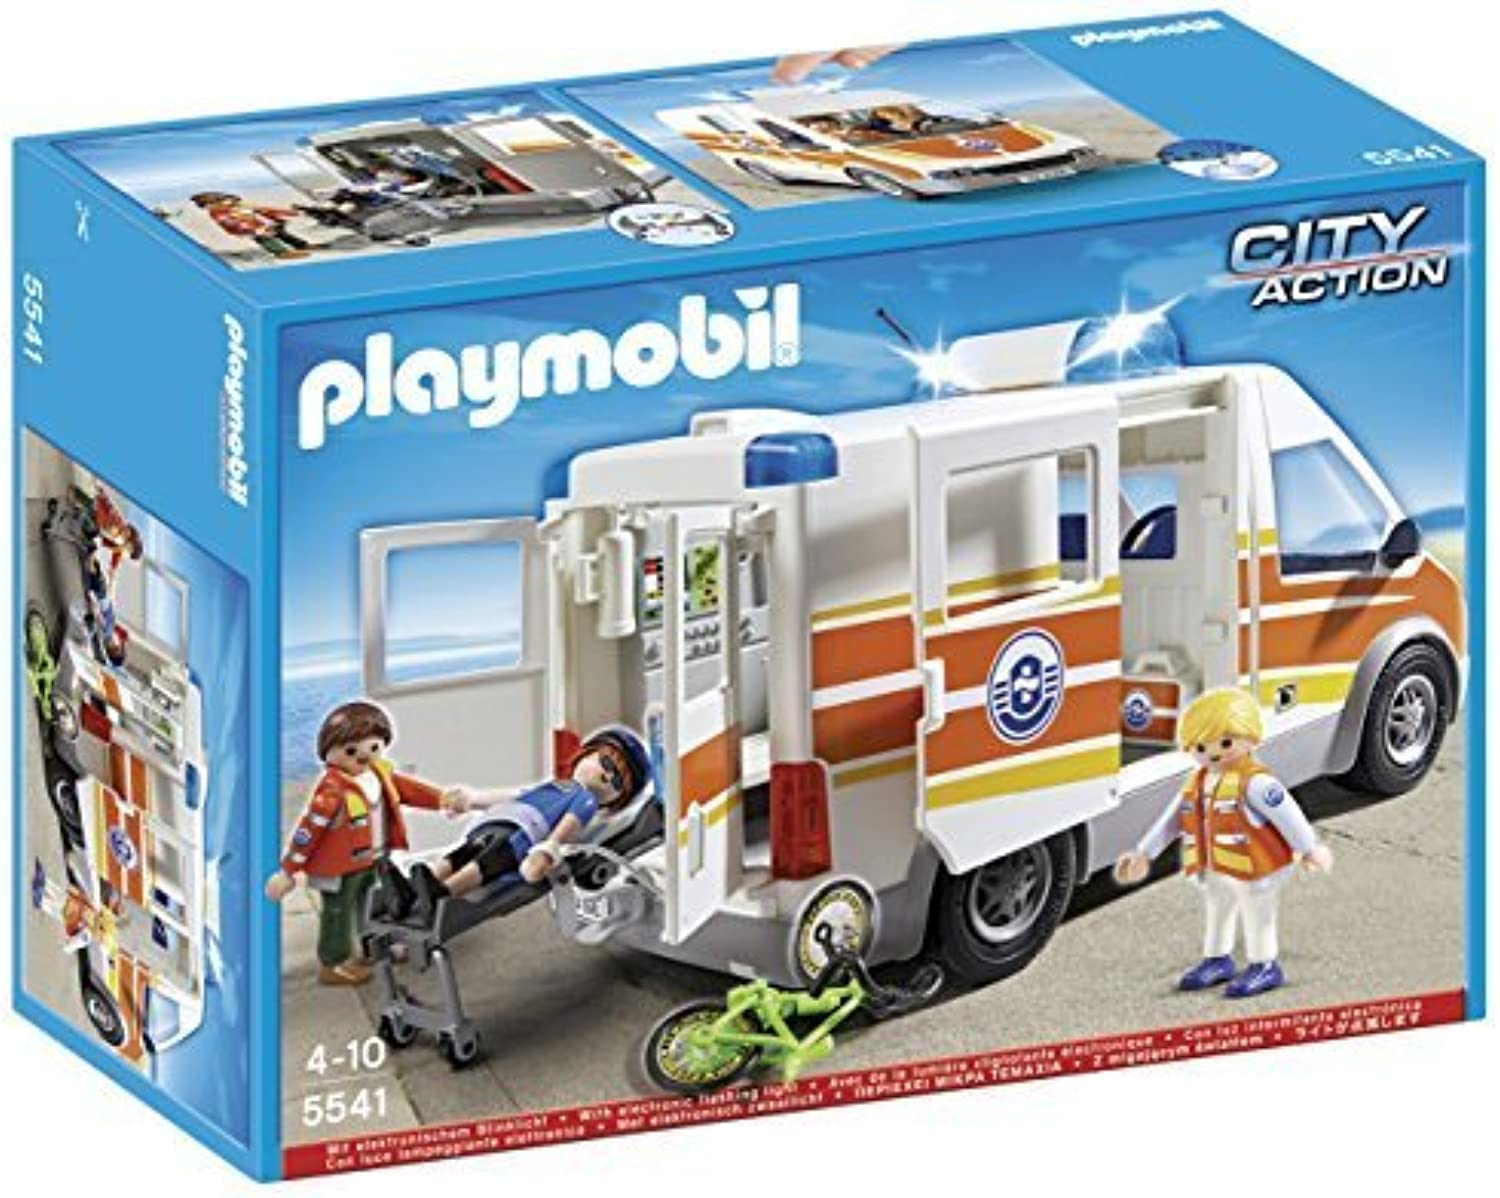 PLAYMOBIL 5541 - Ambulance with Light and Sound by PLAYMOBIL